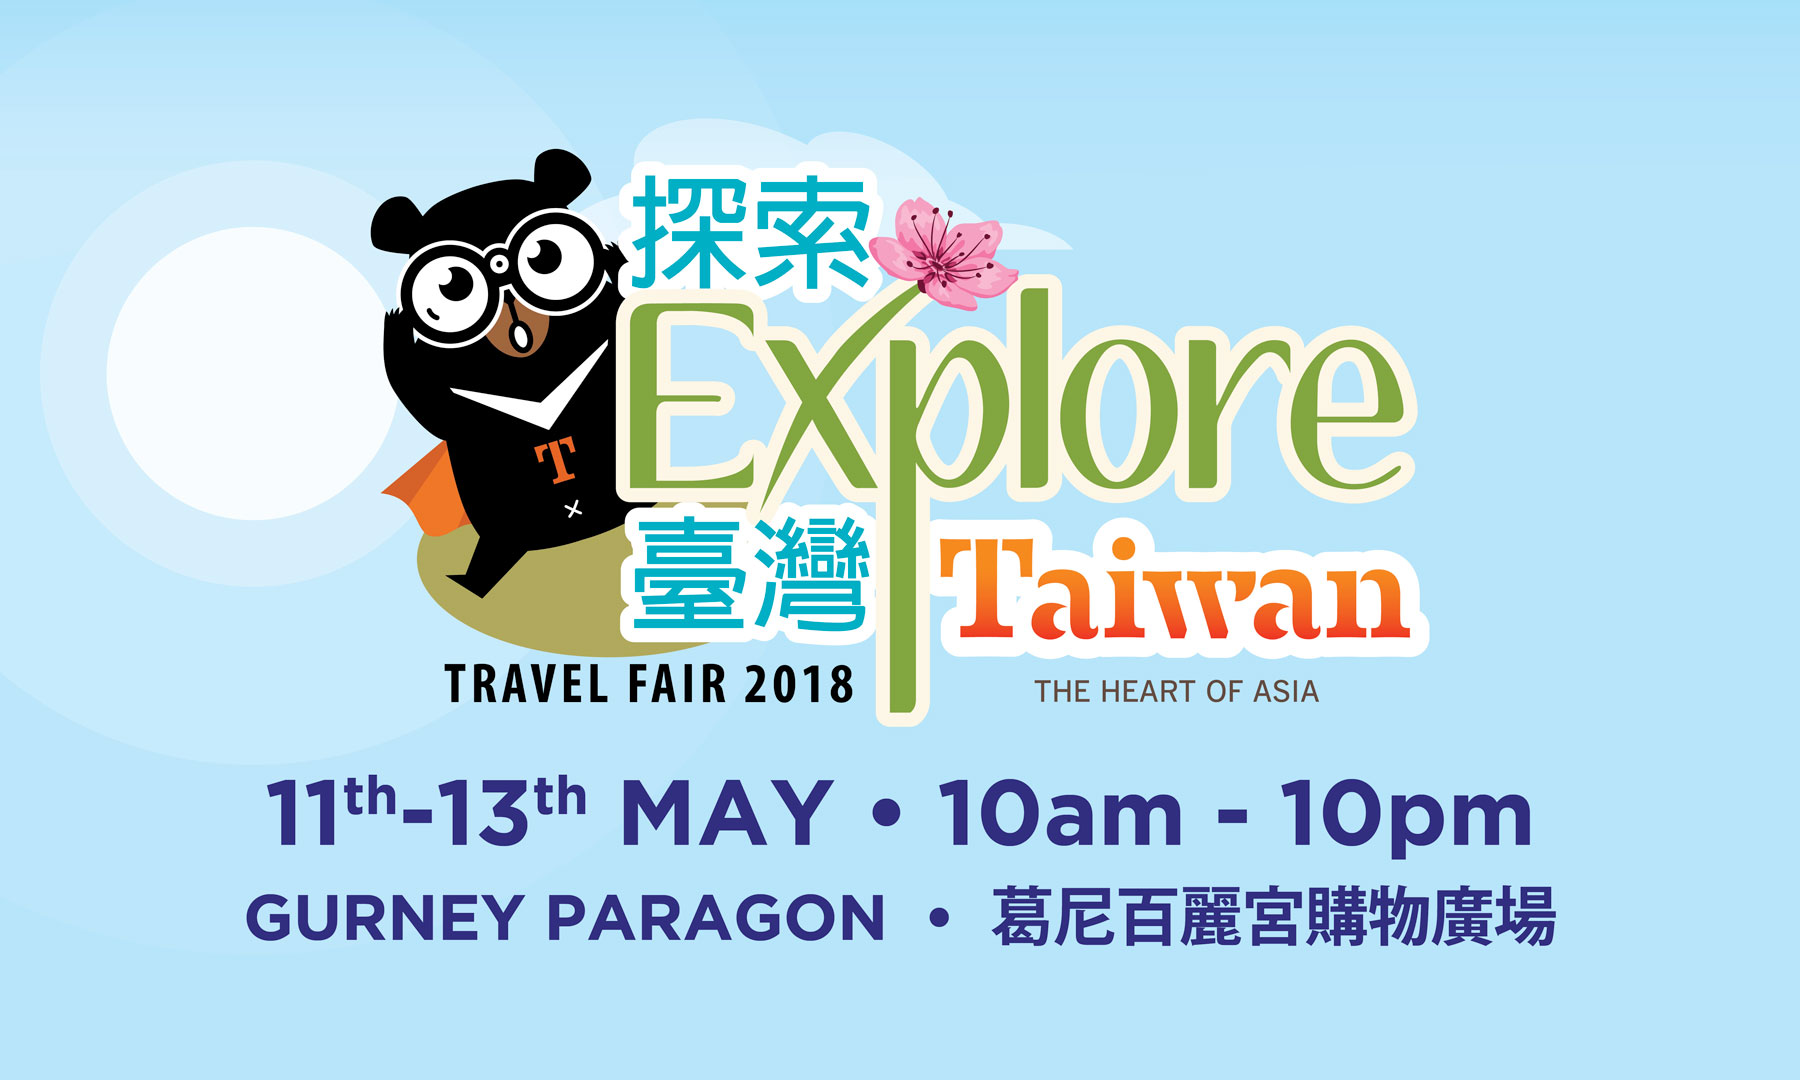 Explore Taiwan Travel Fair 2018